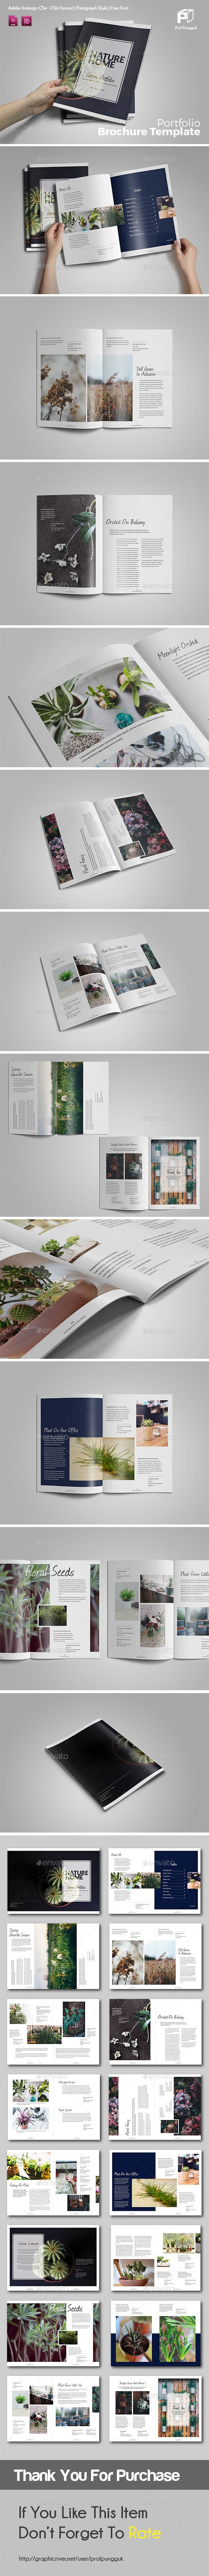 Clean Green Brochure Template InDesign INDD. Download here: http://graphicriver.net/item/clean-green-brochure/16056821?ref=ksioks